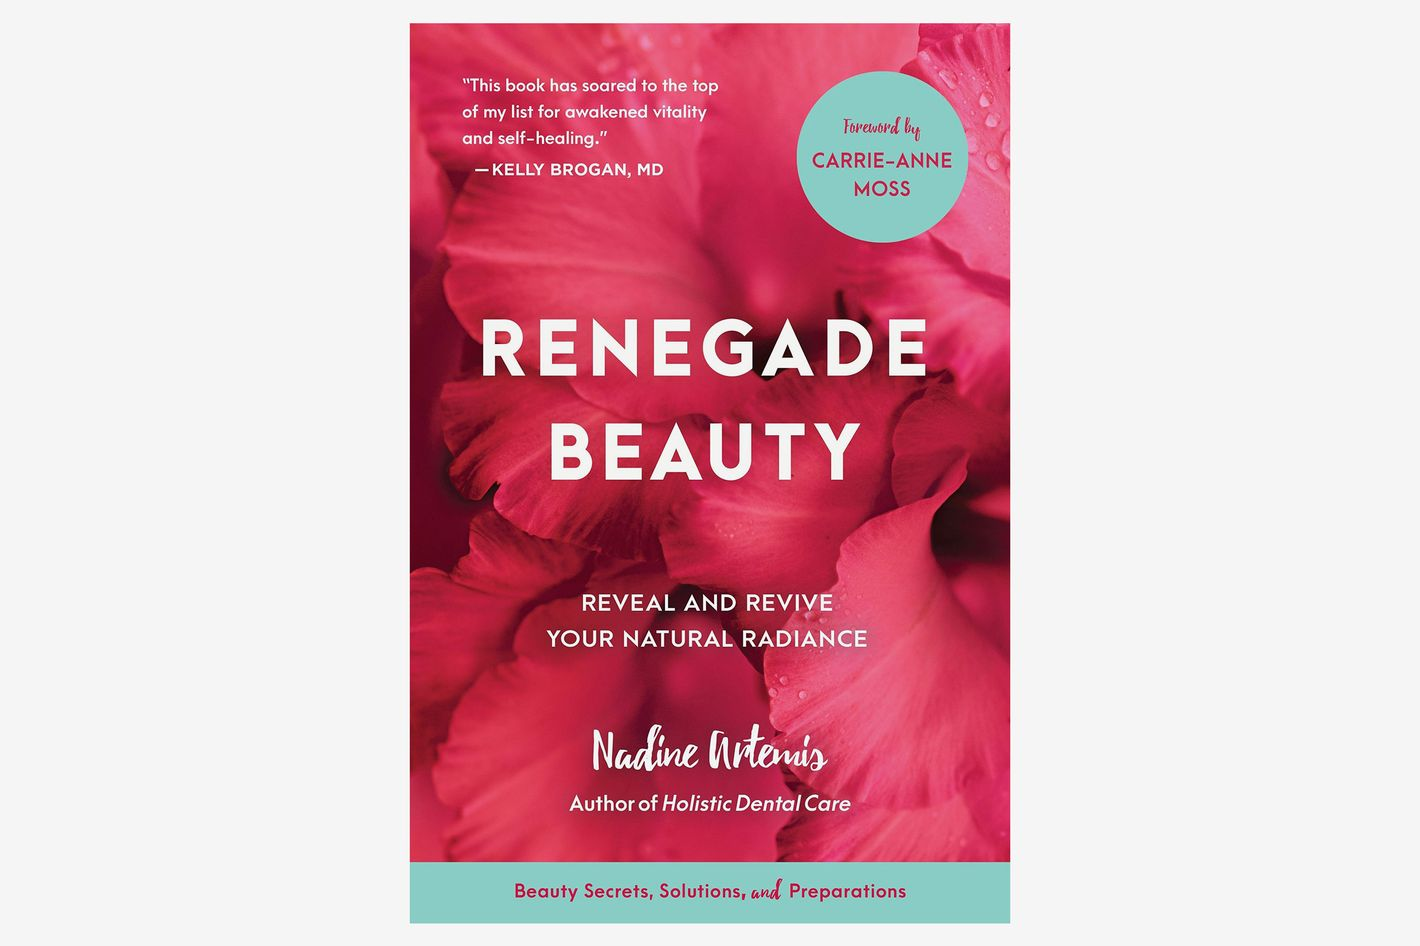 Renegade Beauty: Reveal and Revive Your Natural Radiance–Beauty Secrets, Solutions, and Preparations, by Nadine Artemis